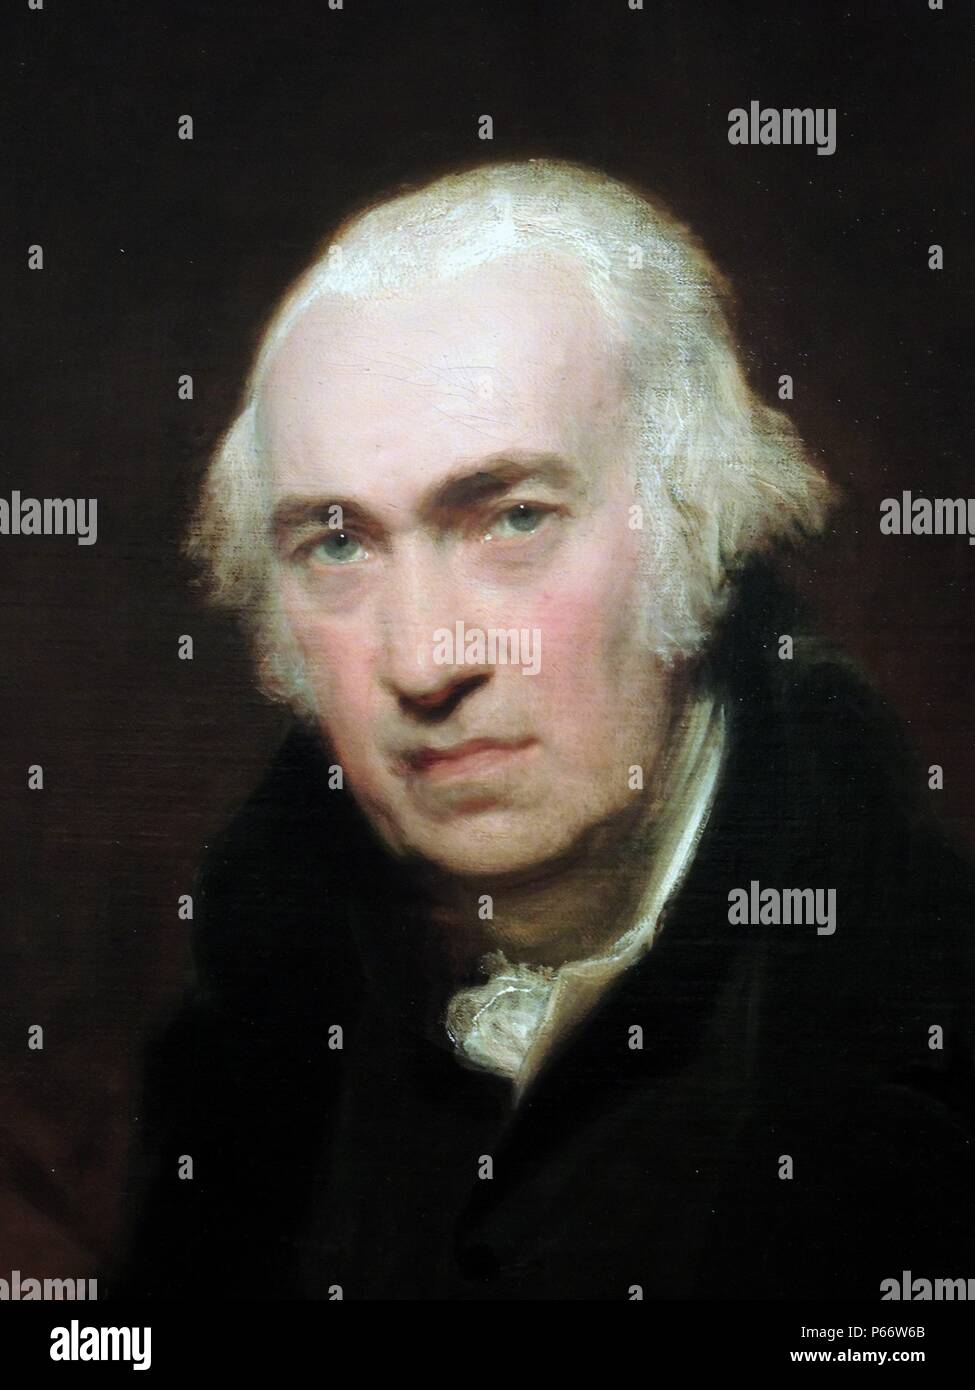 Portrait of James Watt, 1812 by Sir Thomas Lawrence (1769-1830). Oil on canvas. James Watt (born in Greenock, Renfrewshire, Scotland 1736 - died 1819 in Handsworth, Birmingham, England aged 83.) Scottish inventor and mechanical engineer whose improvements to the steam engine were fundamental to the changes brought by the Industrial Revolution in both Great Britain and the rest of the world. Birmingham Museum. - Stock Image